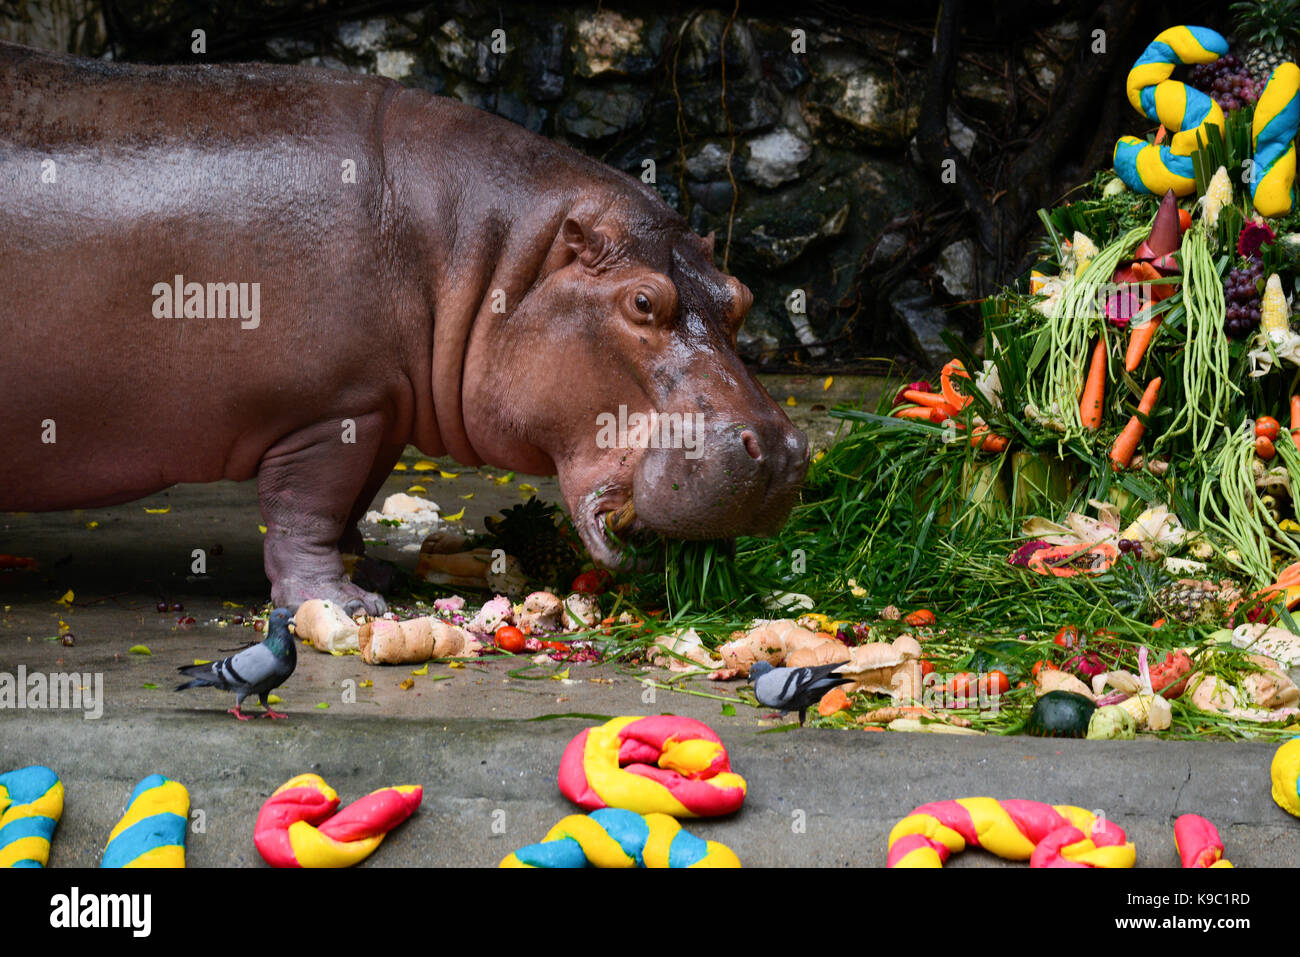 Hippopotamus Mali Eats Her Birthday Cake Made Of Fruit And Vegetables In Front Grandchild Makam At A Party To Celebrate 51th Dusit